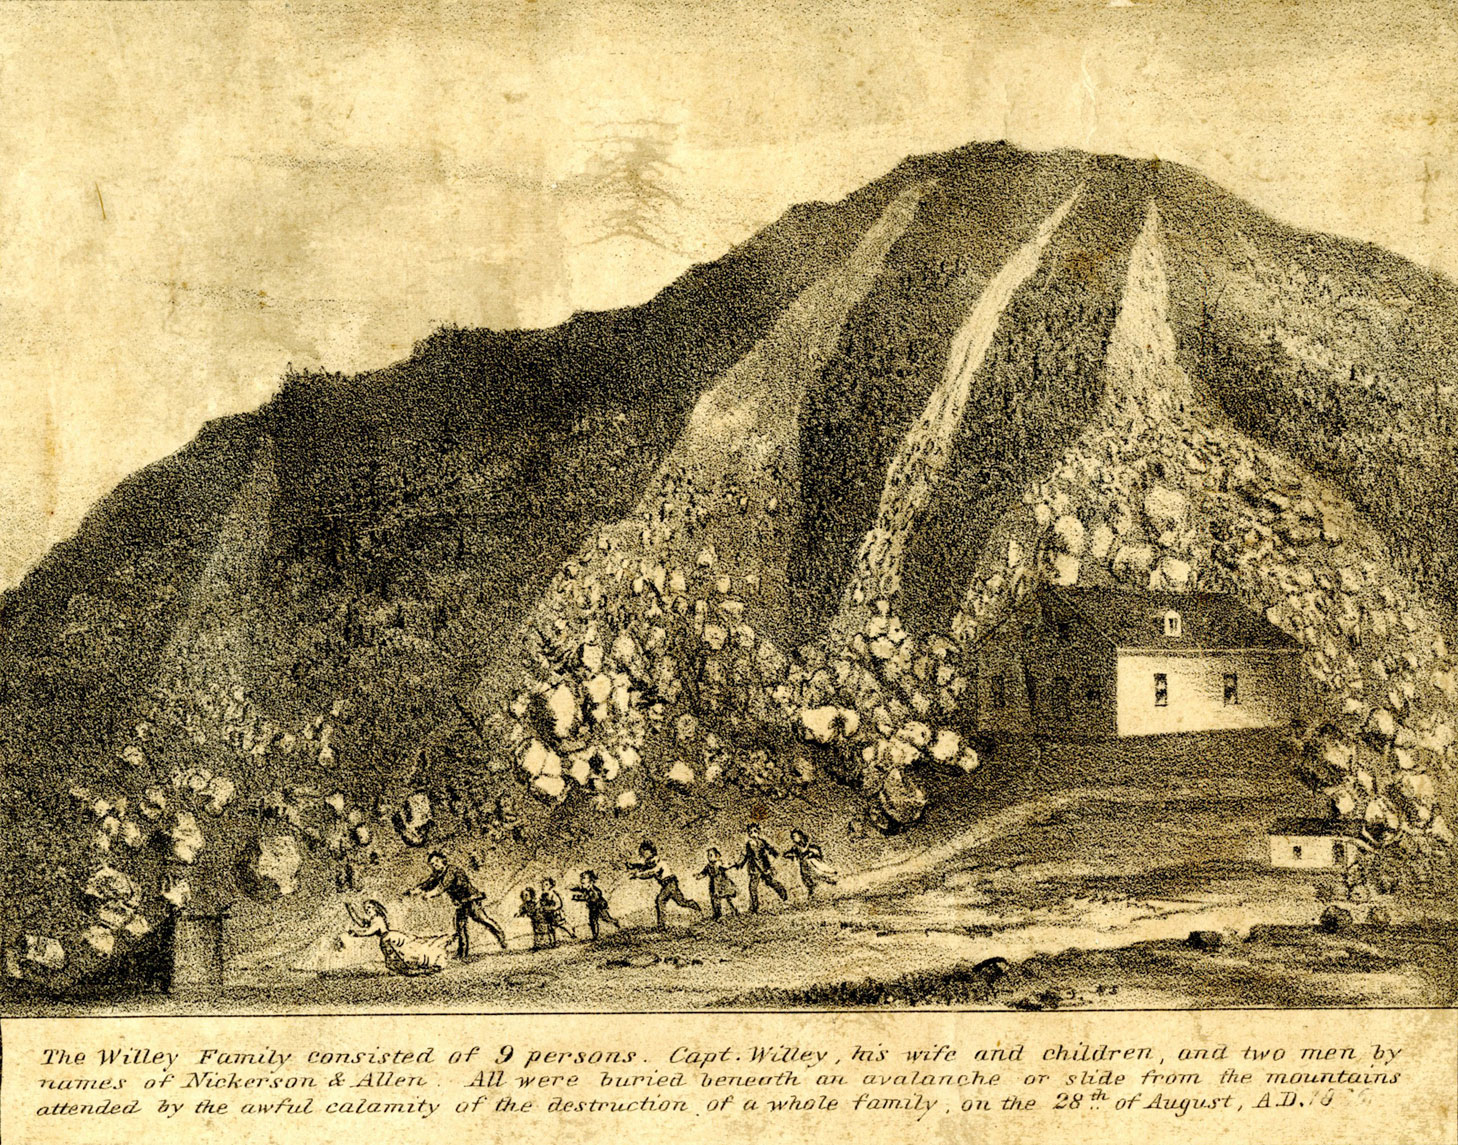 A drawing of a hillside shows a dark hill with four rock slides. Each rockslide looks like a river at the top of the hill, but resolves into individual rocks as it descends. The rightmost rockslide encircles a small house at the bottom of the hill. Along the bottom of the drawing, nine people are seen running in a line away from the house. Although they are small figures, based on their sizes and dress, they are a mix of men, women, and children. The four rockslides end all along their path. There are three lines of small writing below the drawing which describe the drawing.